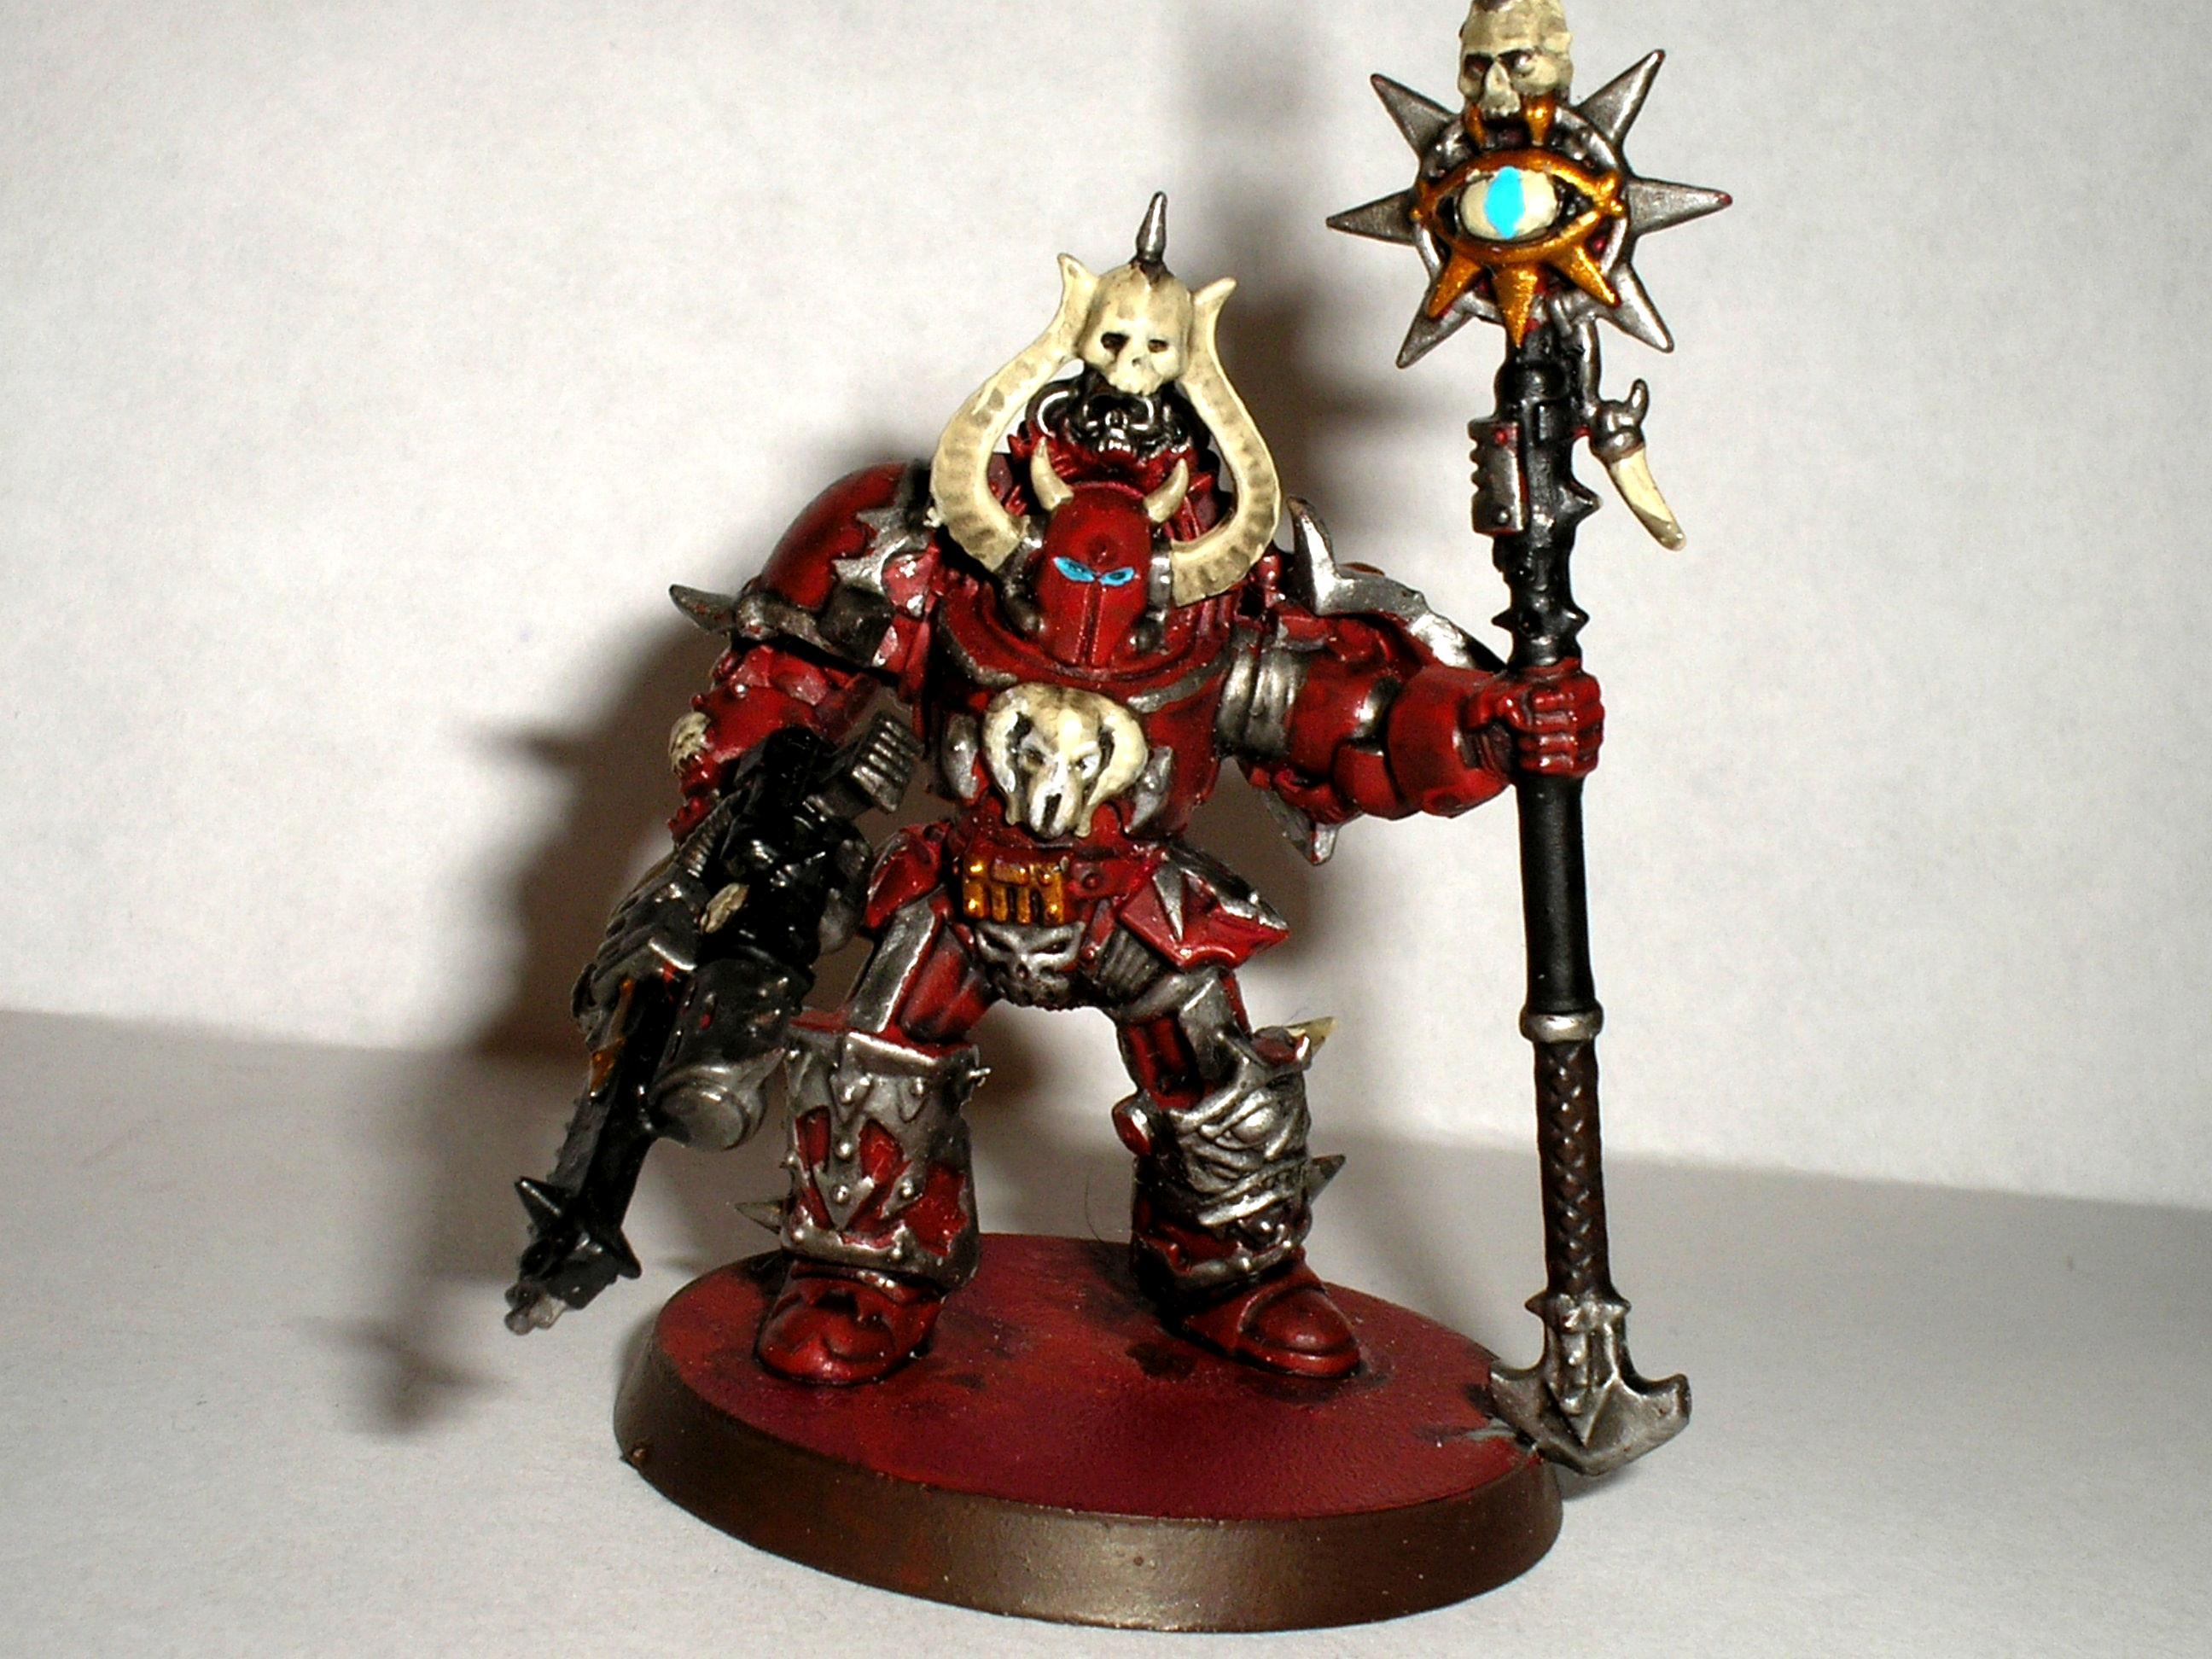 Bearer, Chaos, Chaos Space Marines, Sorceror, Space Marines, Terminator Armor, Word, Word Bearers